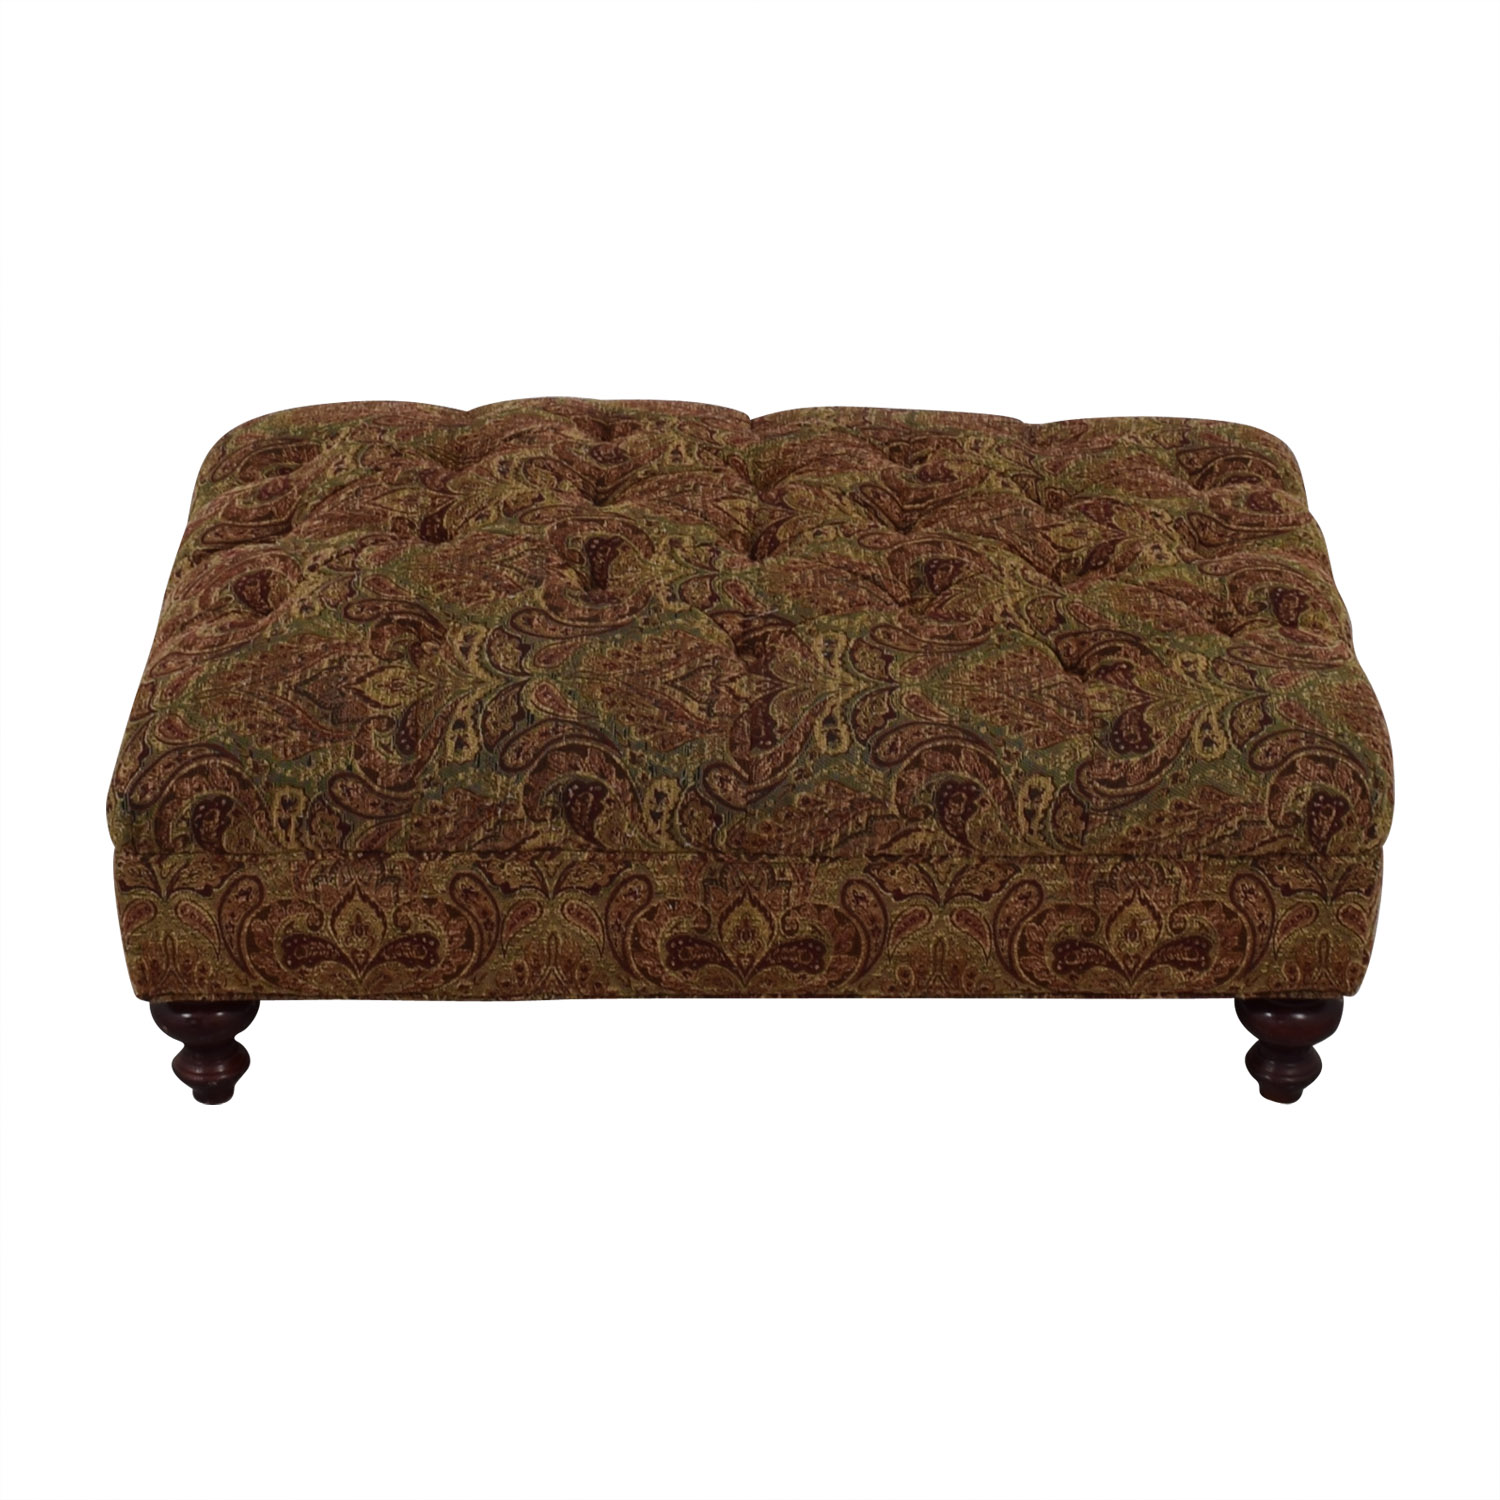 Upholstered Ottoman / Chairs